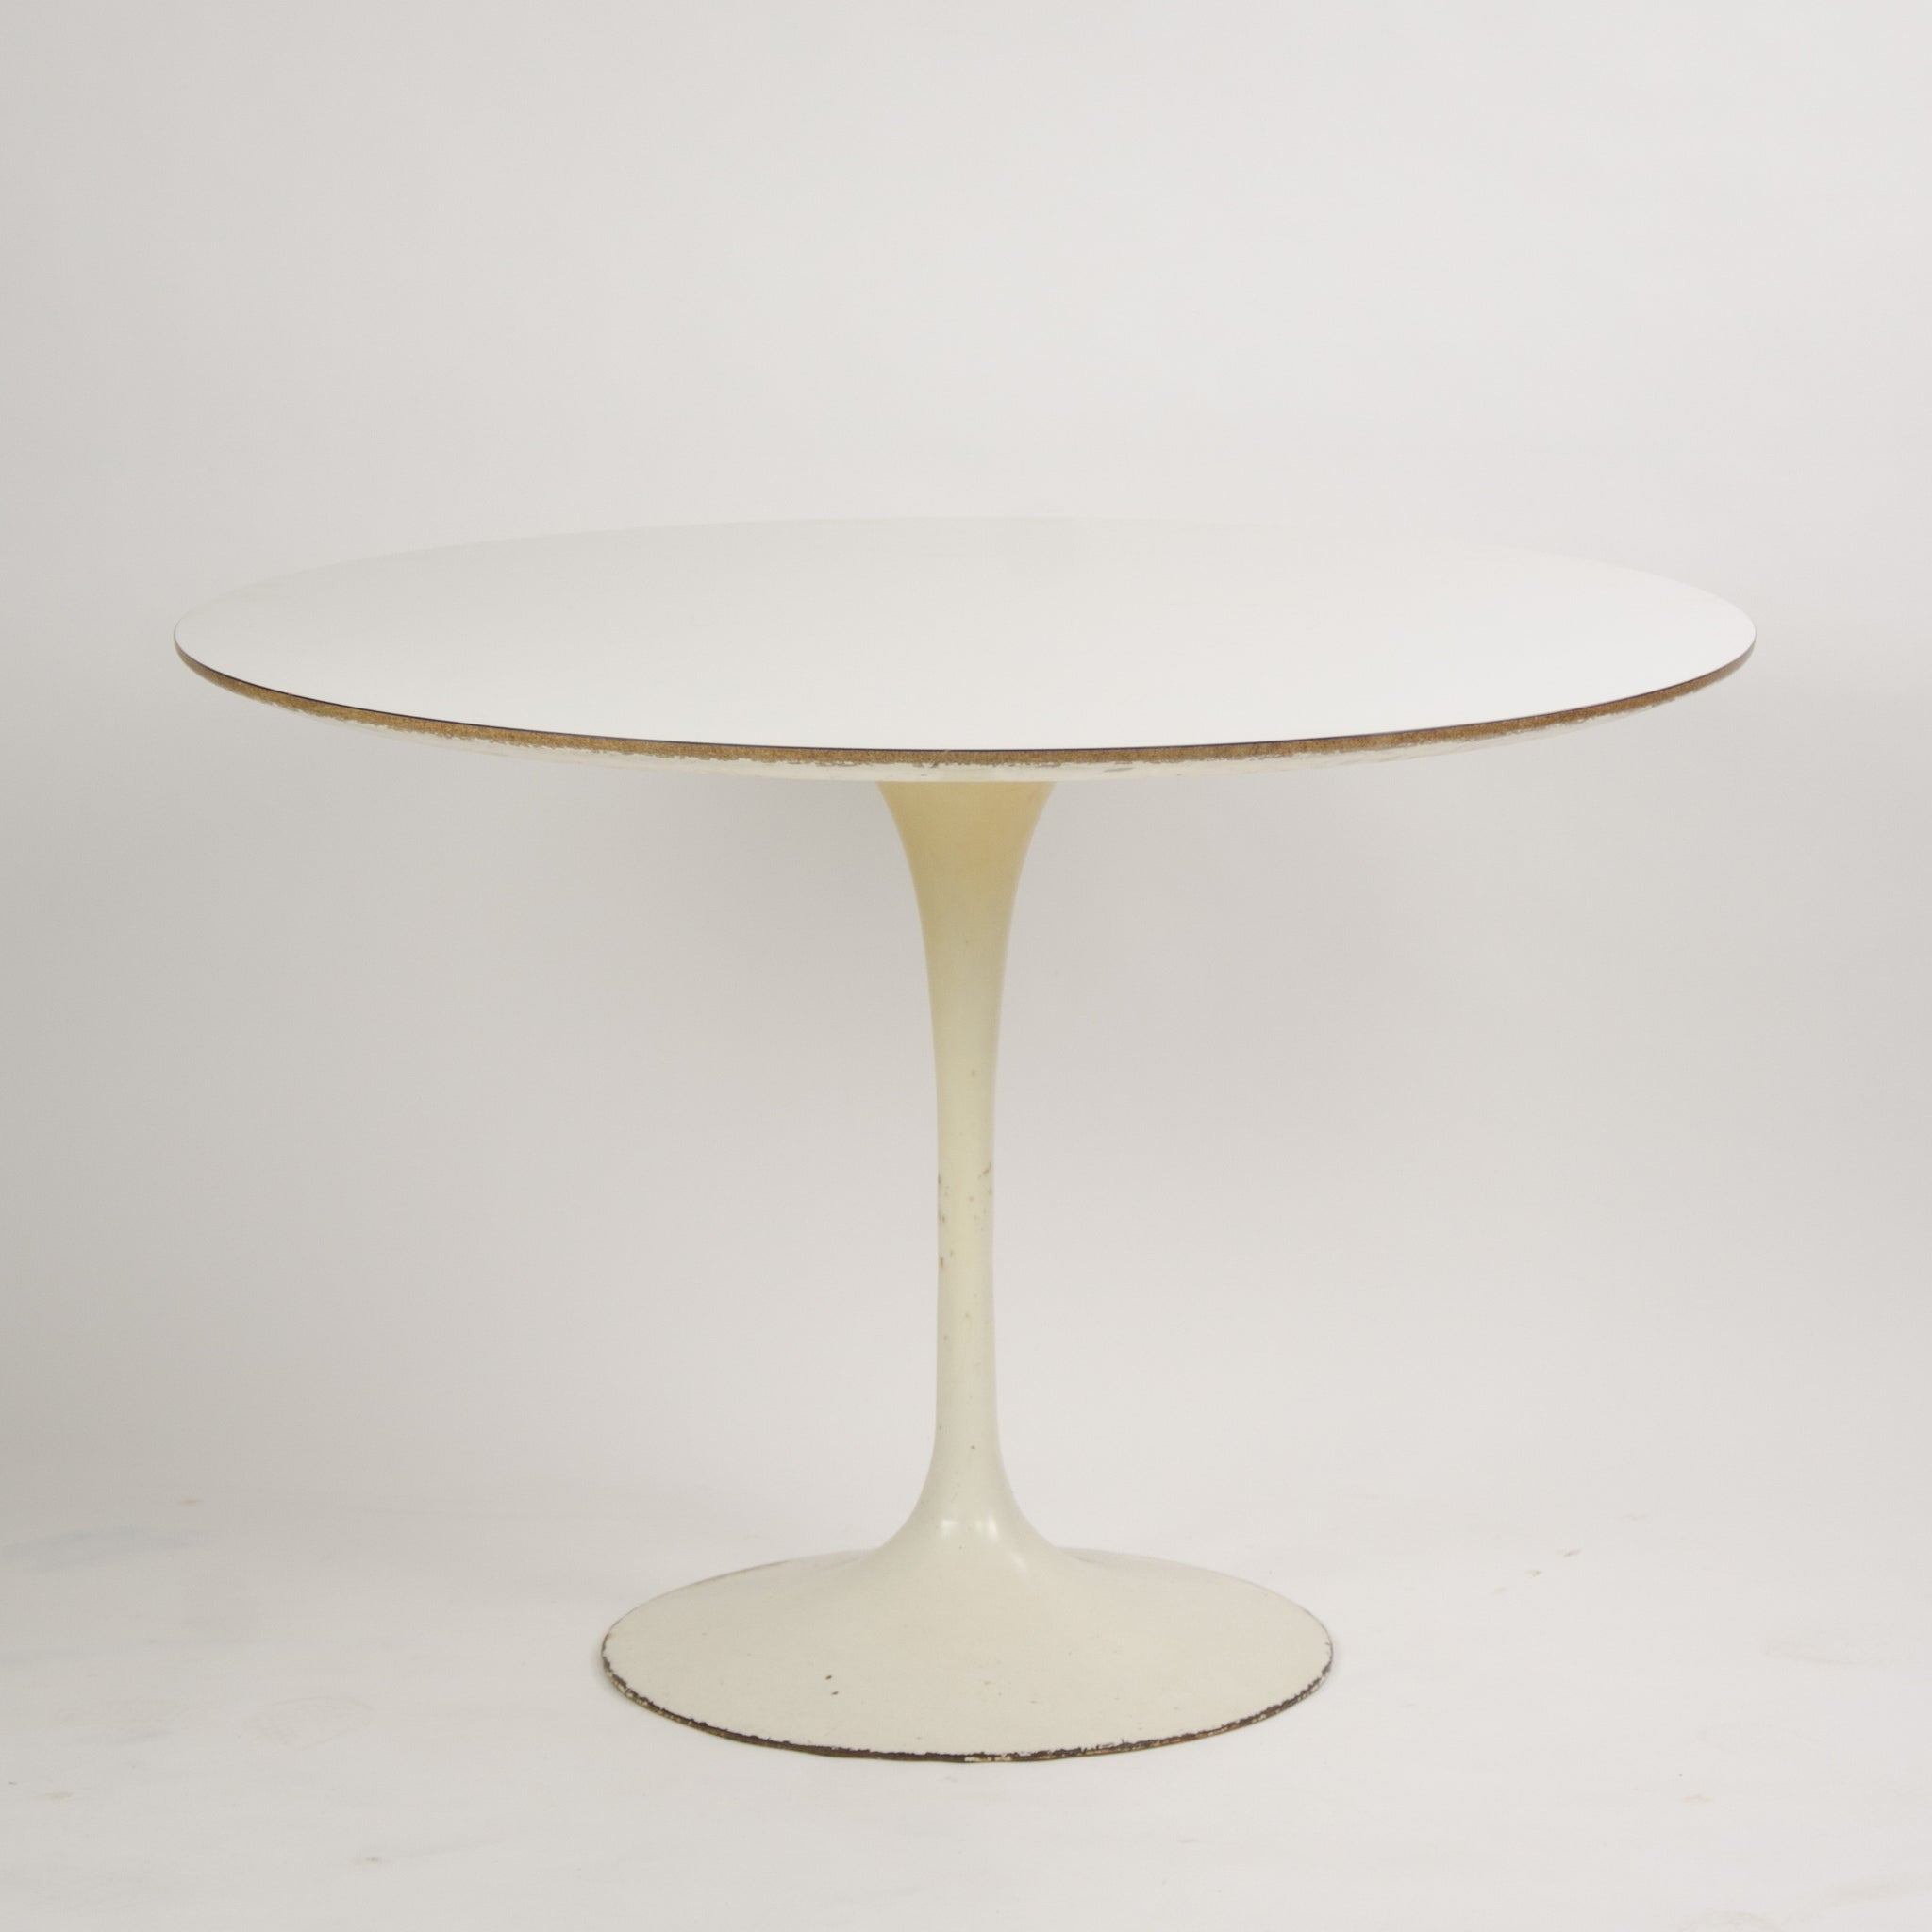 SOLD Eero Saarinen For Knoll 42 Inch Tulip Cafe / Dining Table Marked 1960's